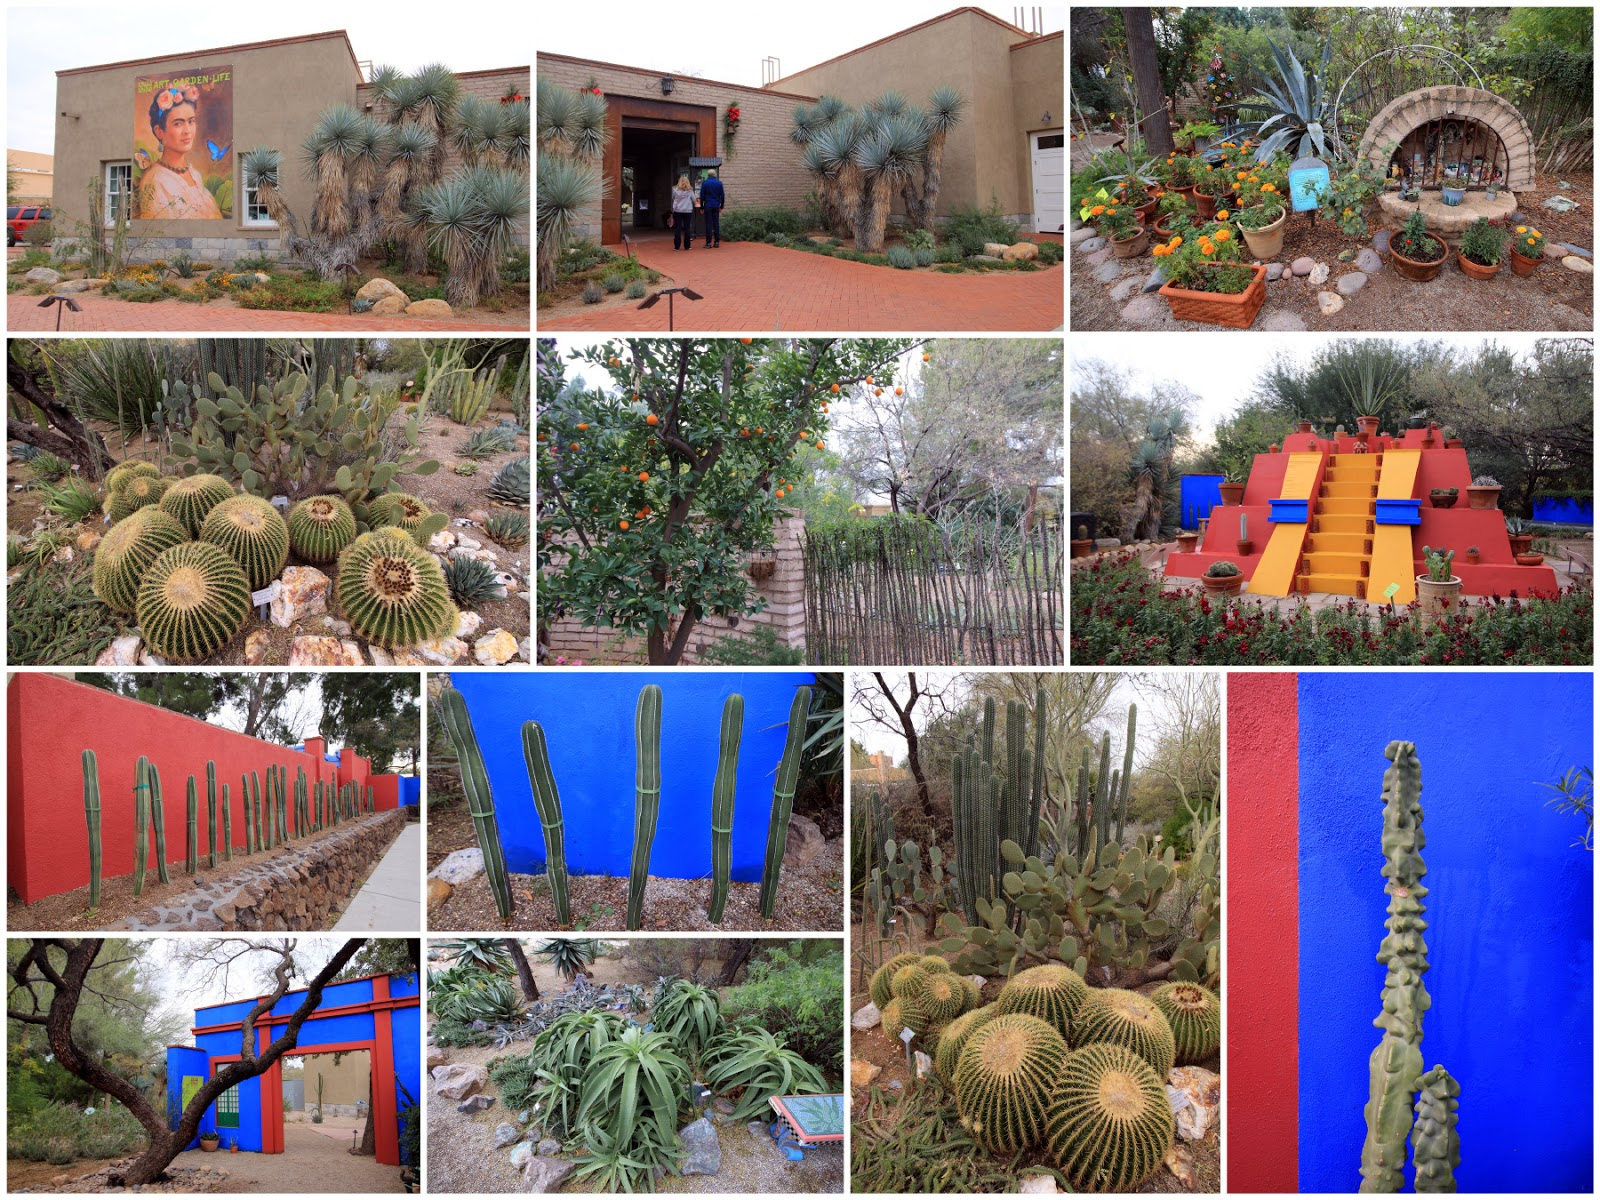 ... To Check Out Plants For The Southwest Nursery But Changed My Mind At  The Last Minute. It Was Still Overcast When I Left The Tucson Botanical  Garden So ...